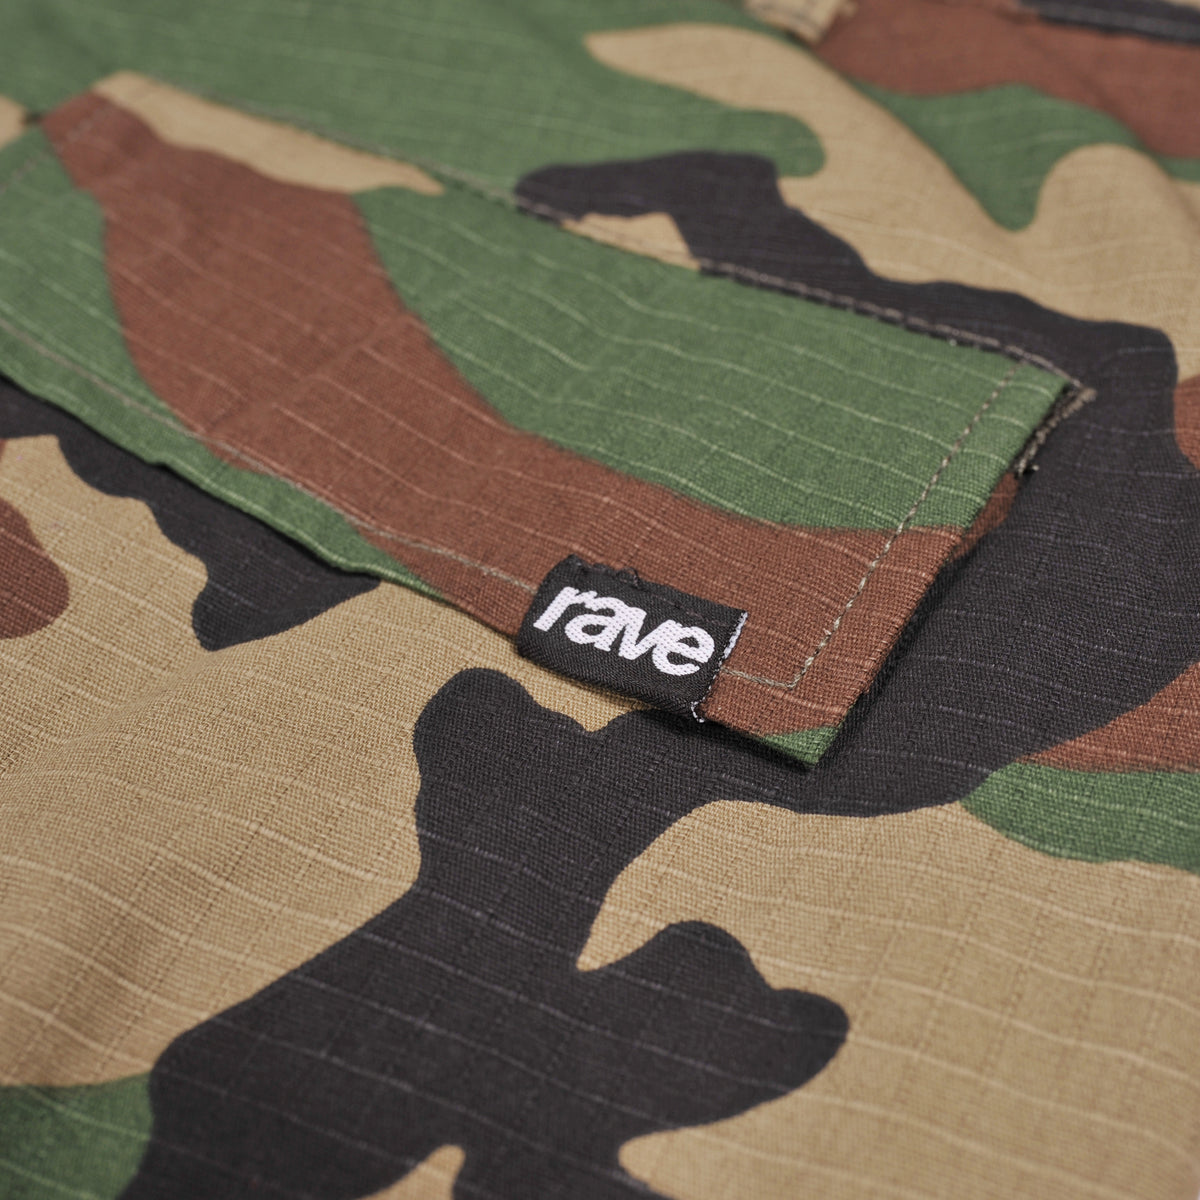 SUMMIT camo cargo pant - RAVE skateboards